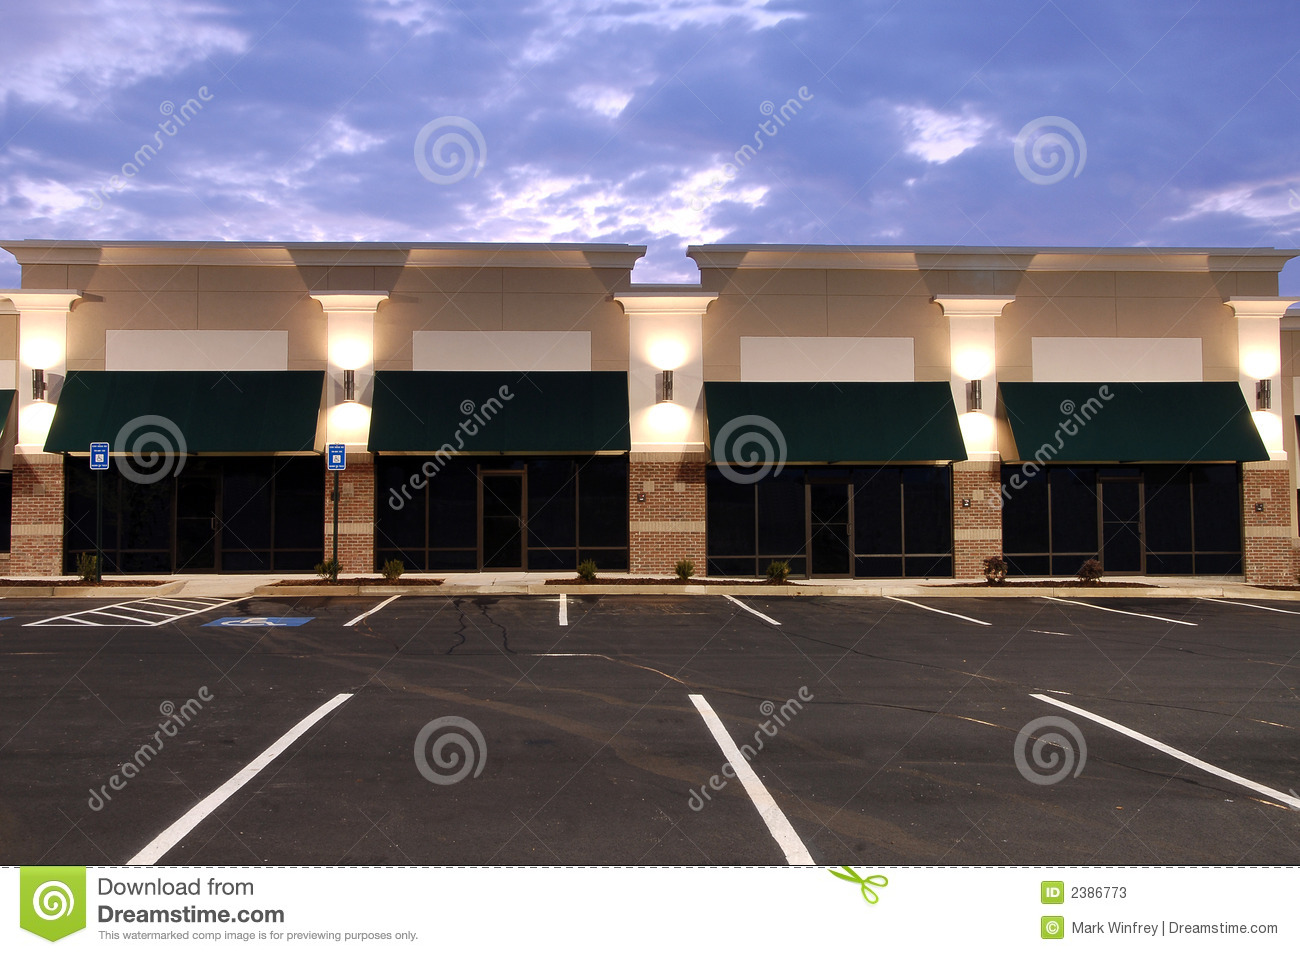 Commercial space for lease stock photos image 2386773 - Small commercial rental space photos ...